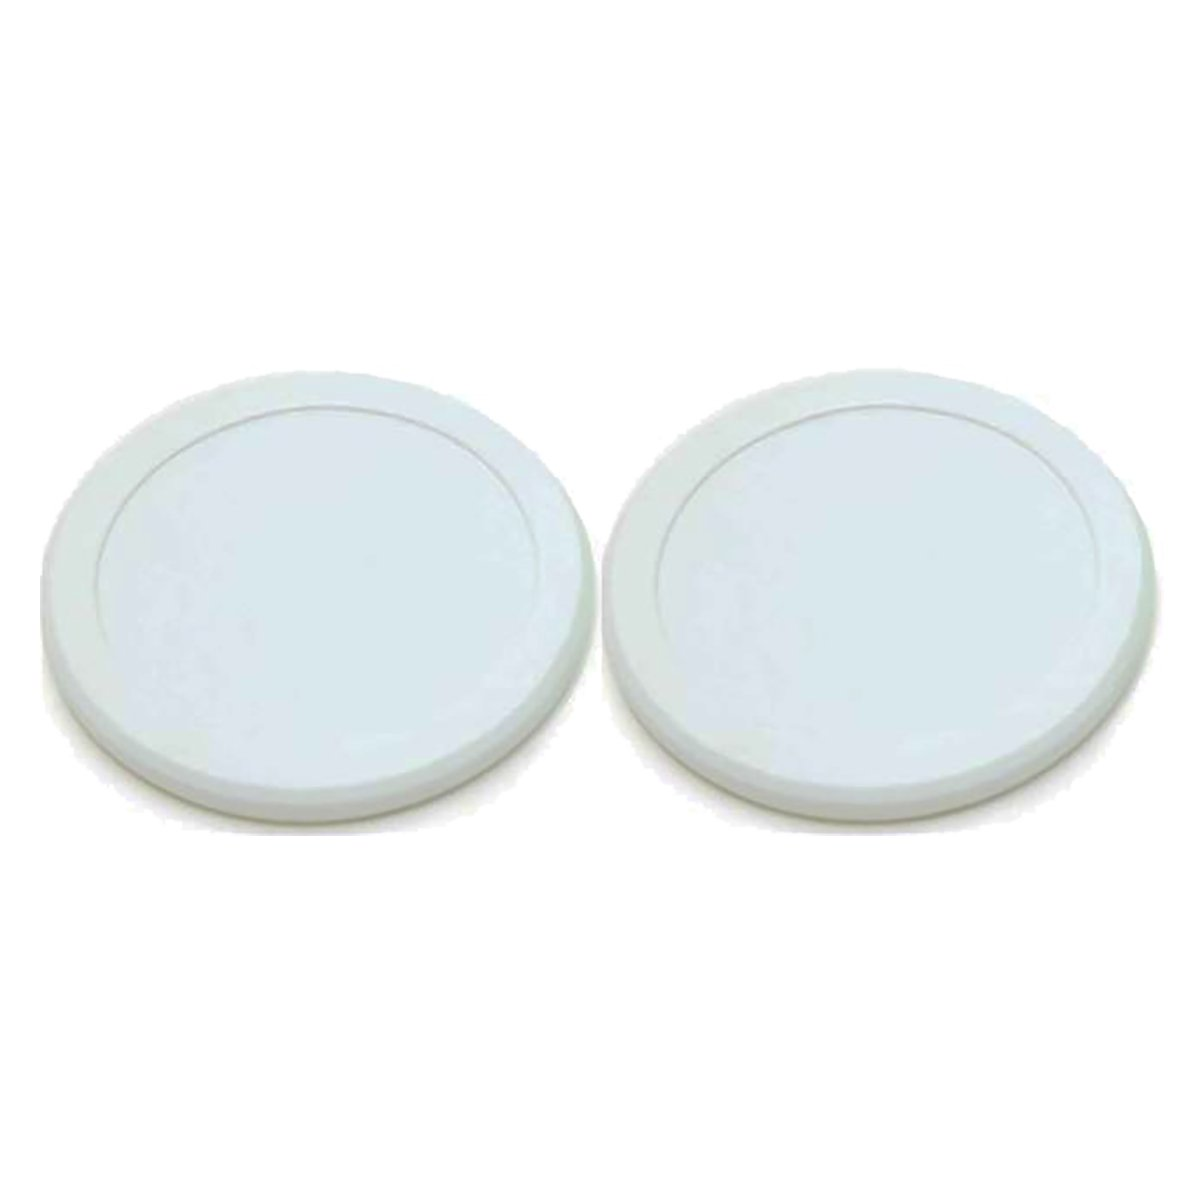 Valley-Dynamo 2-1/2'' Quiet White Air Hockey Puck Set by Valley-Dynamo